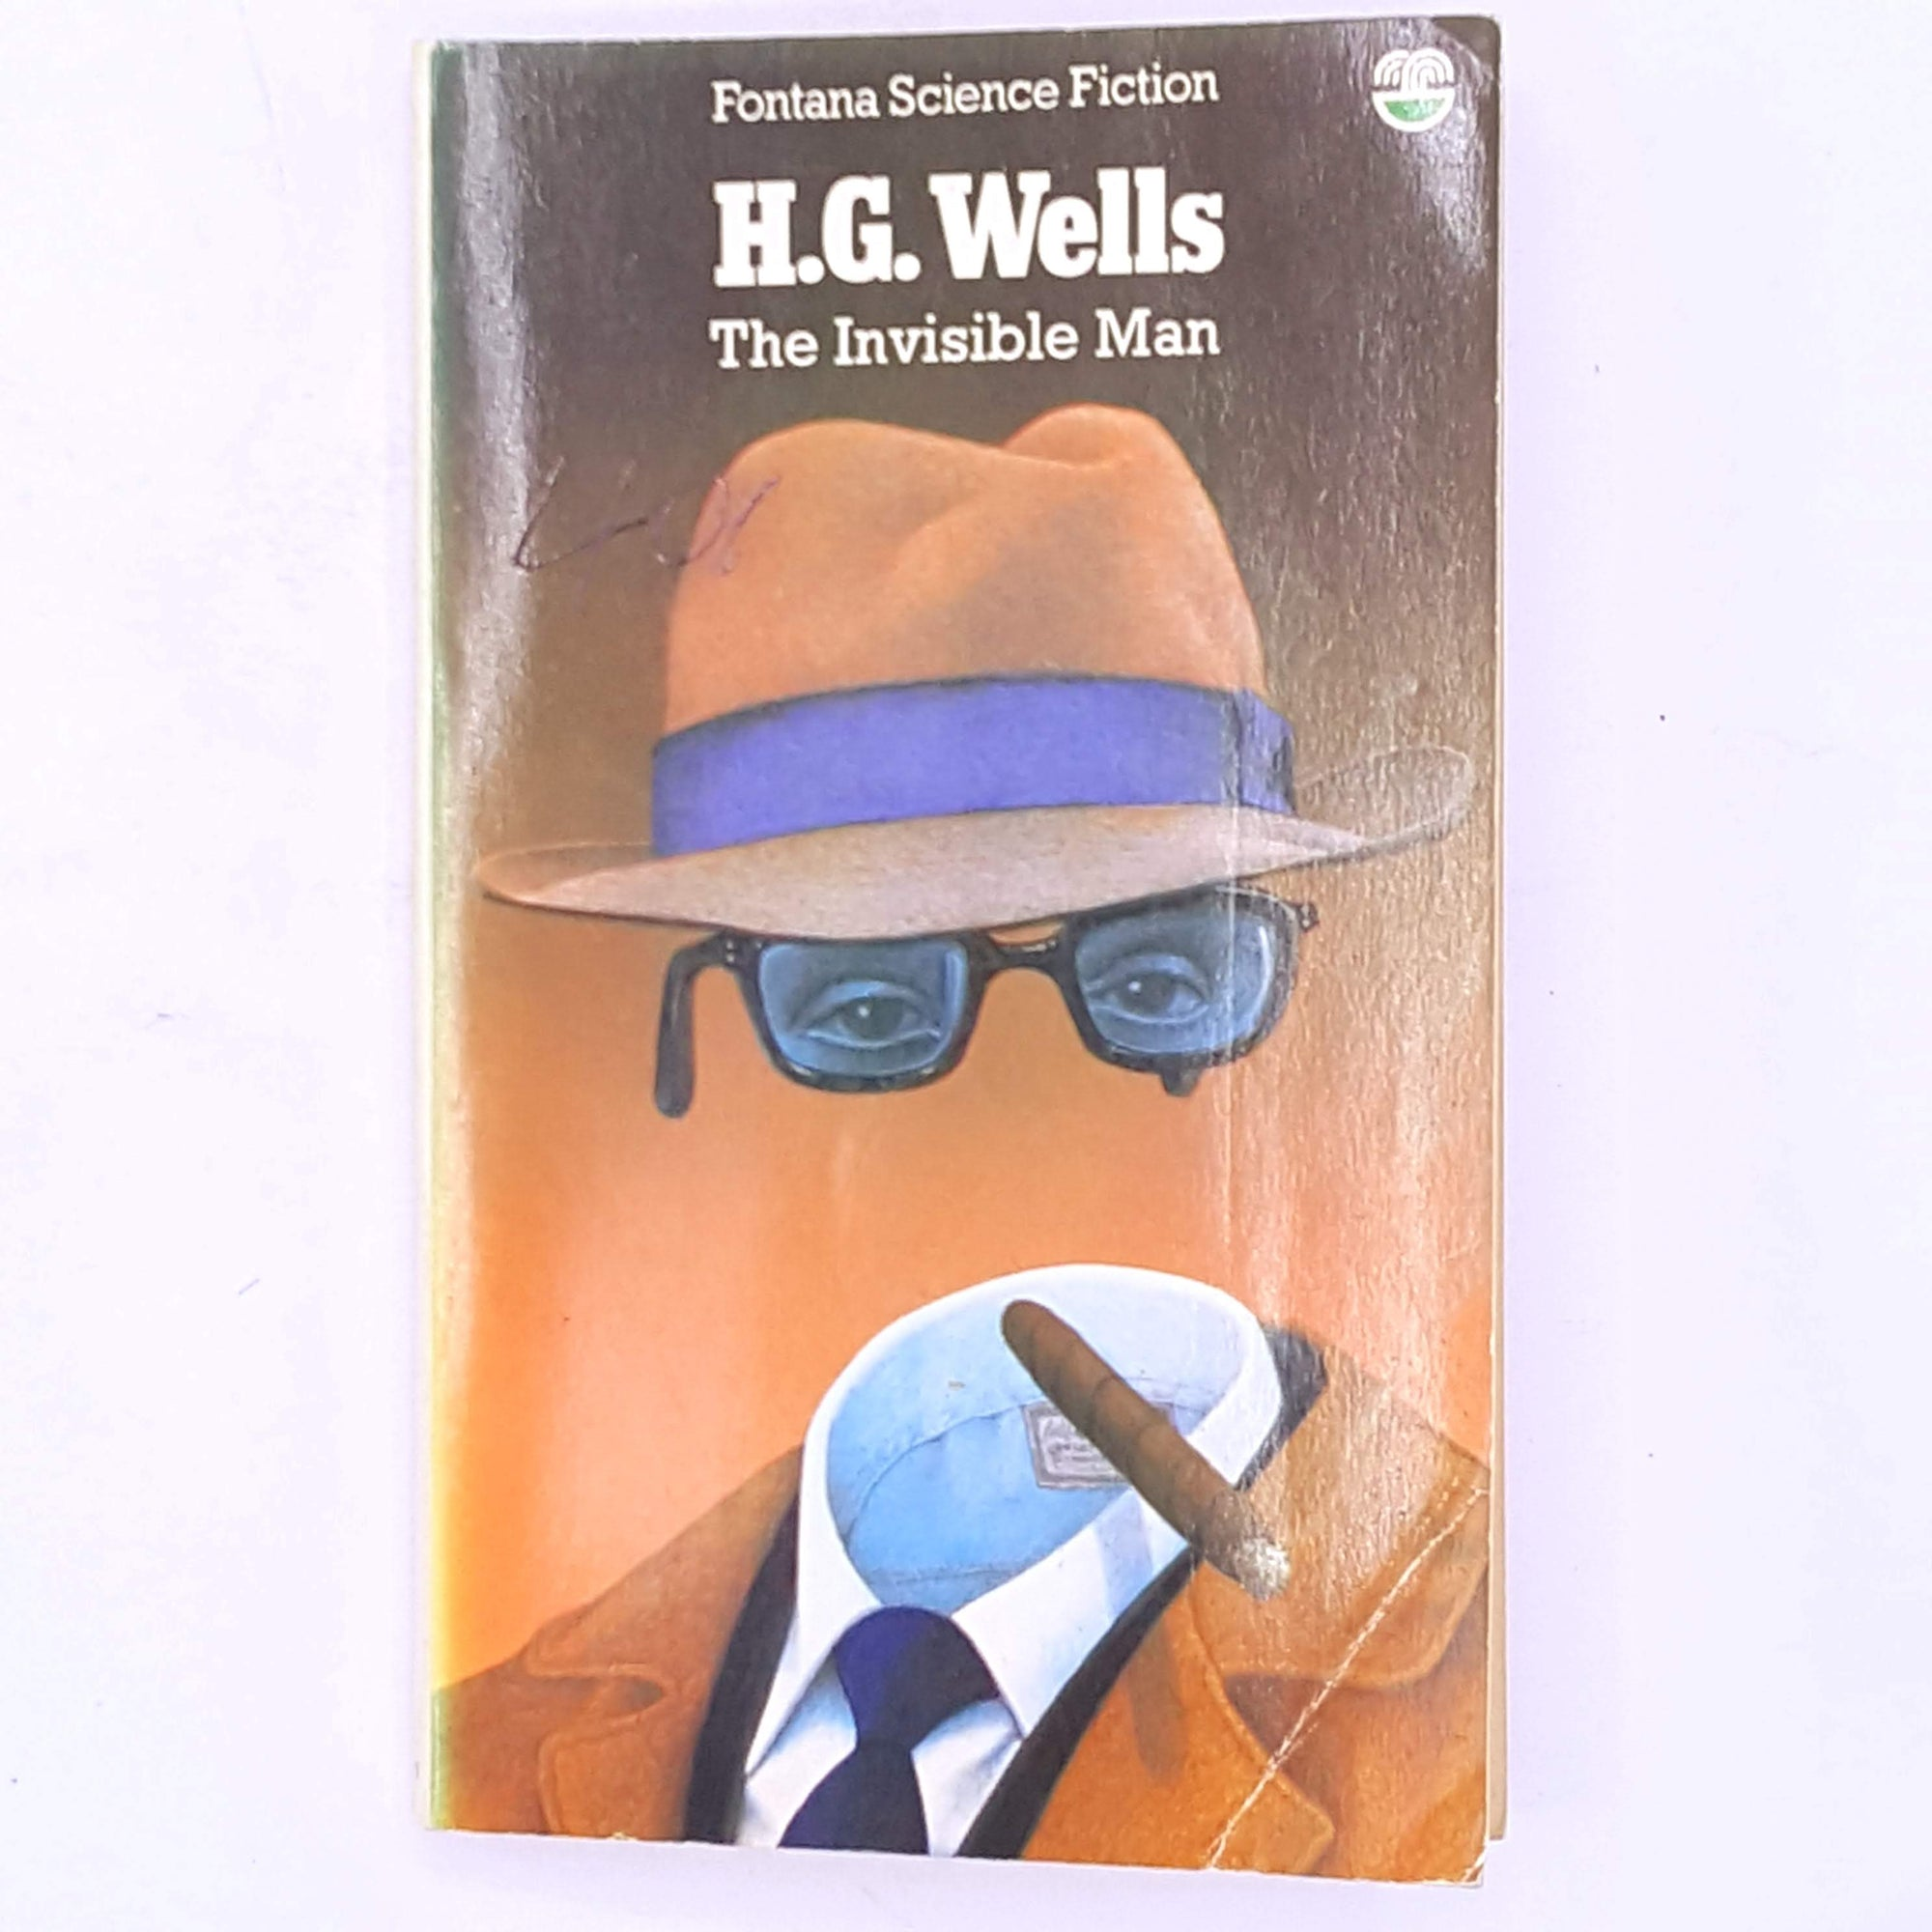 patterned-vintage-antique-horror-books-H.G.-Wells-The-Invisible-Man-decorative-science-fiction-thriller-old-classic-country-house-library-thrift-